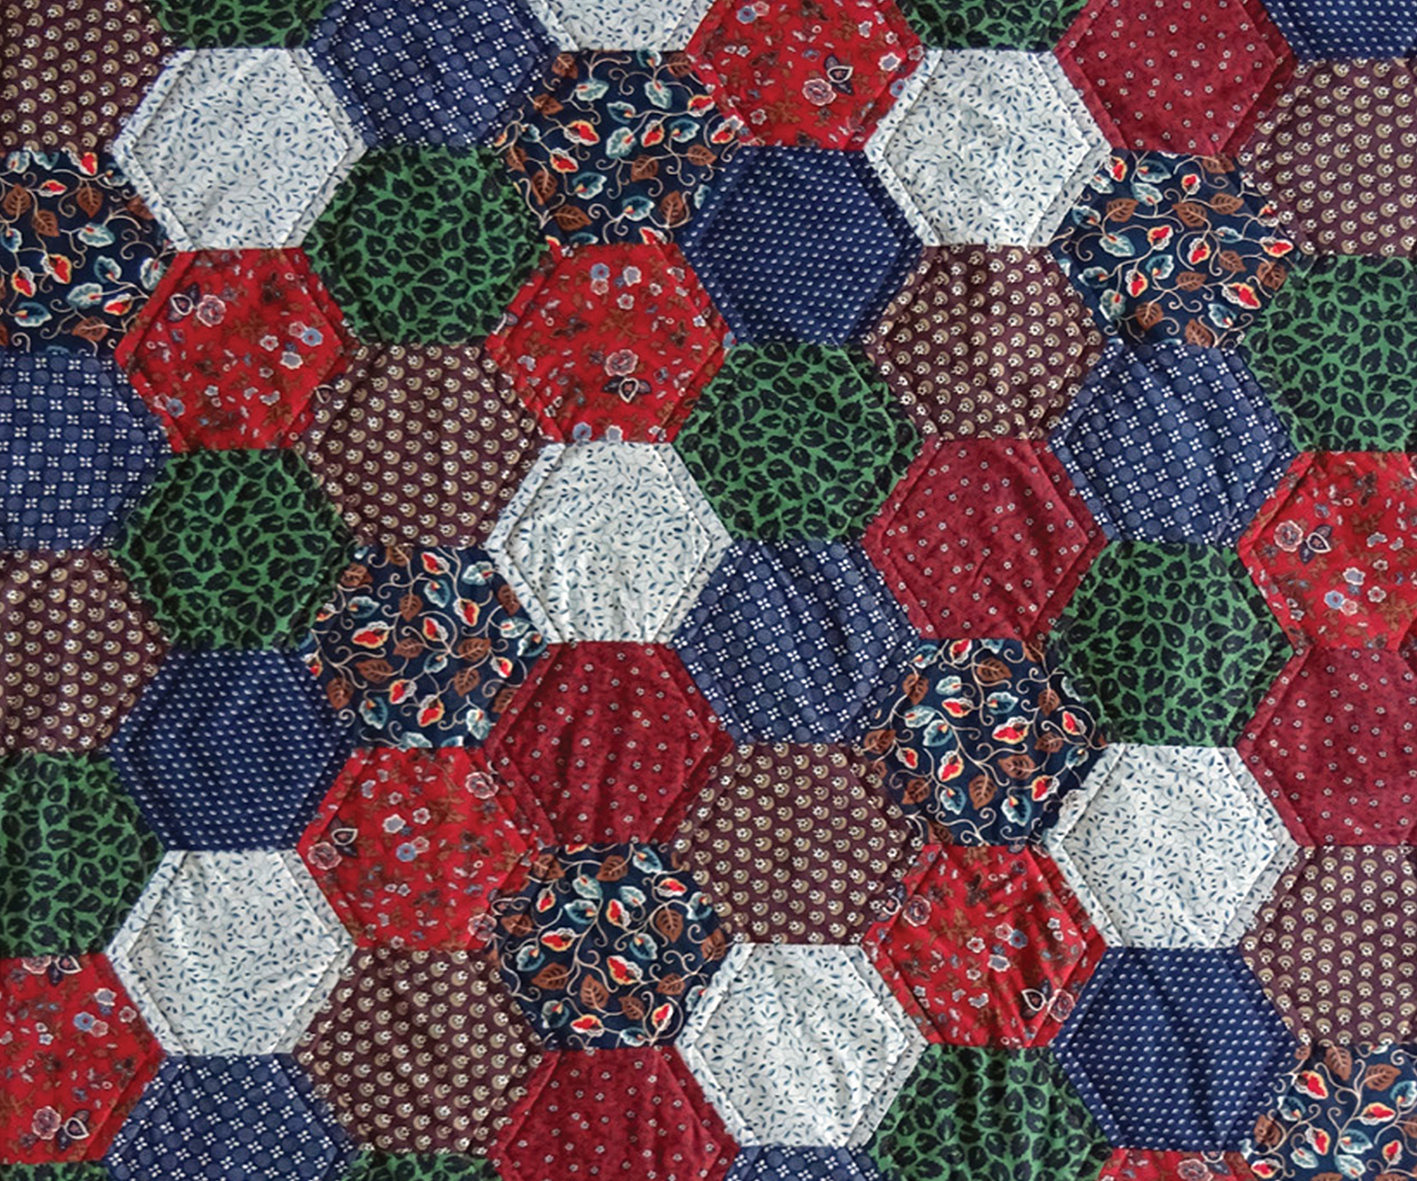 PATCHWORK-INTRO-BANNER - HEXAGON-PICNIC-QUILT-POST-IMAGE